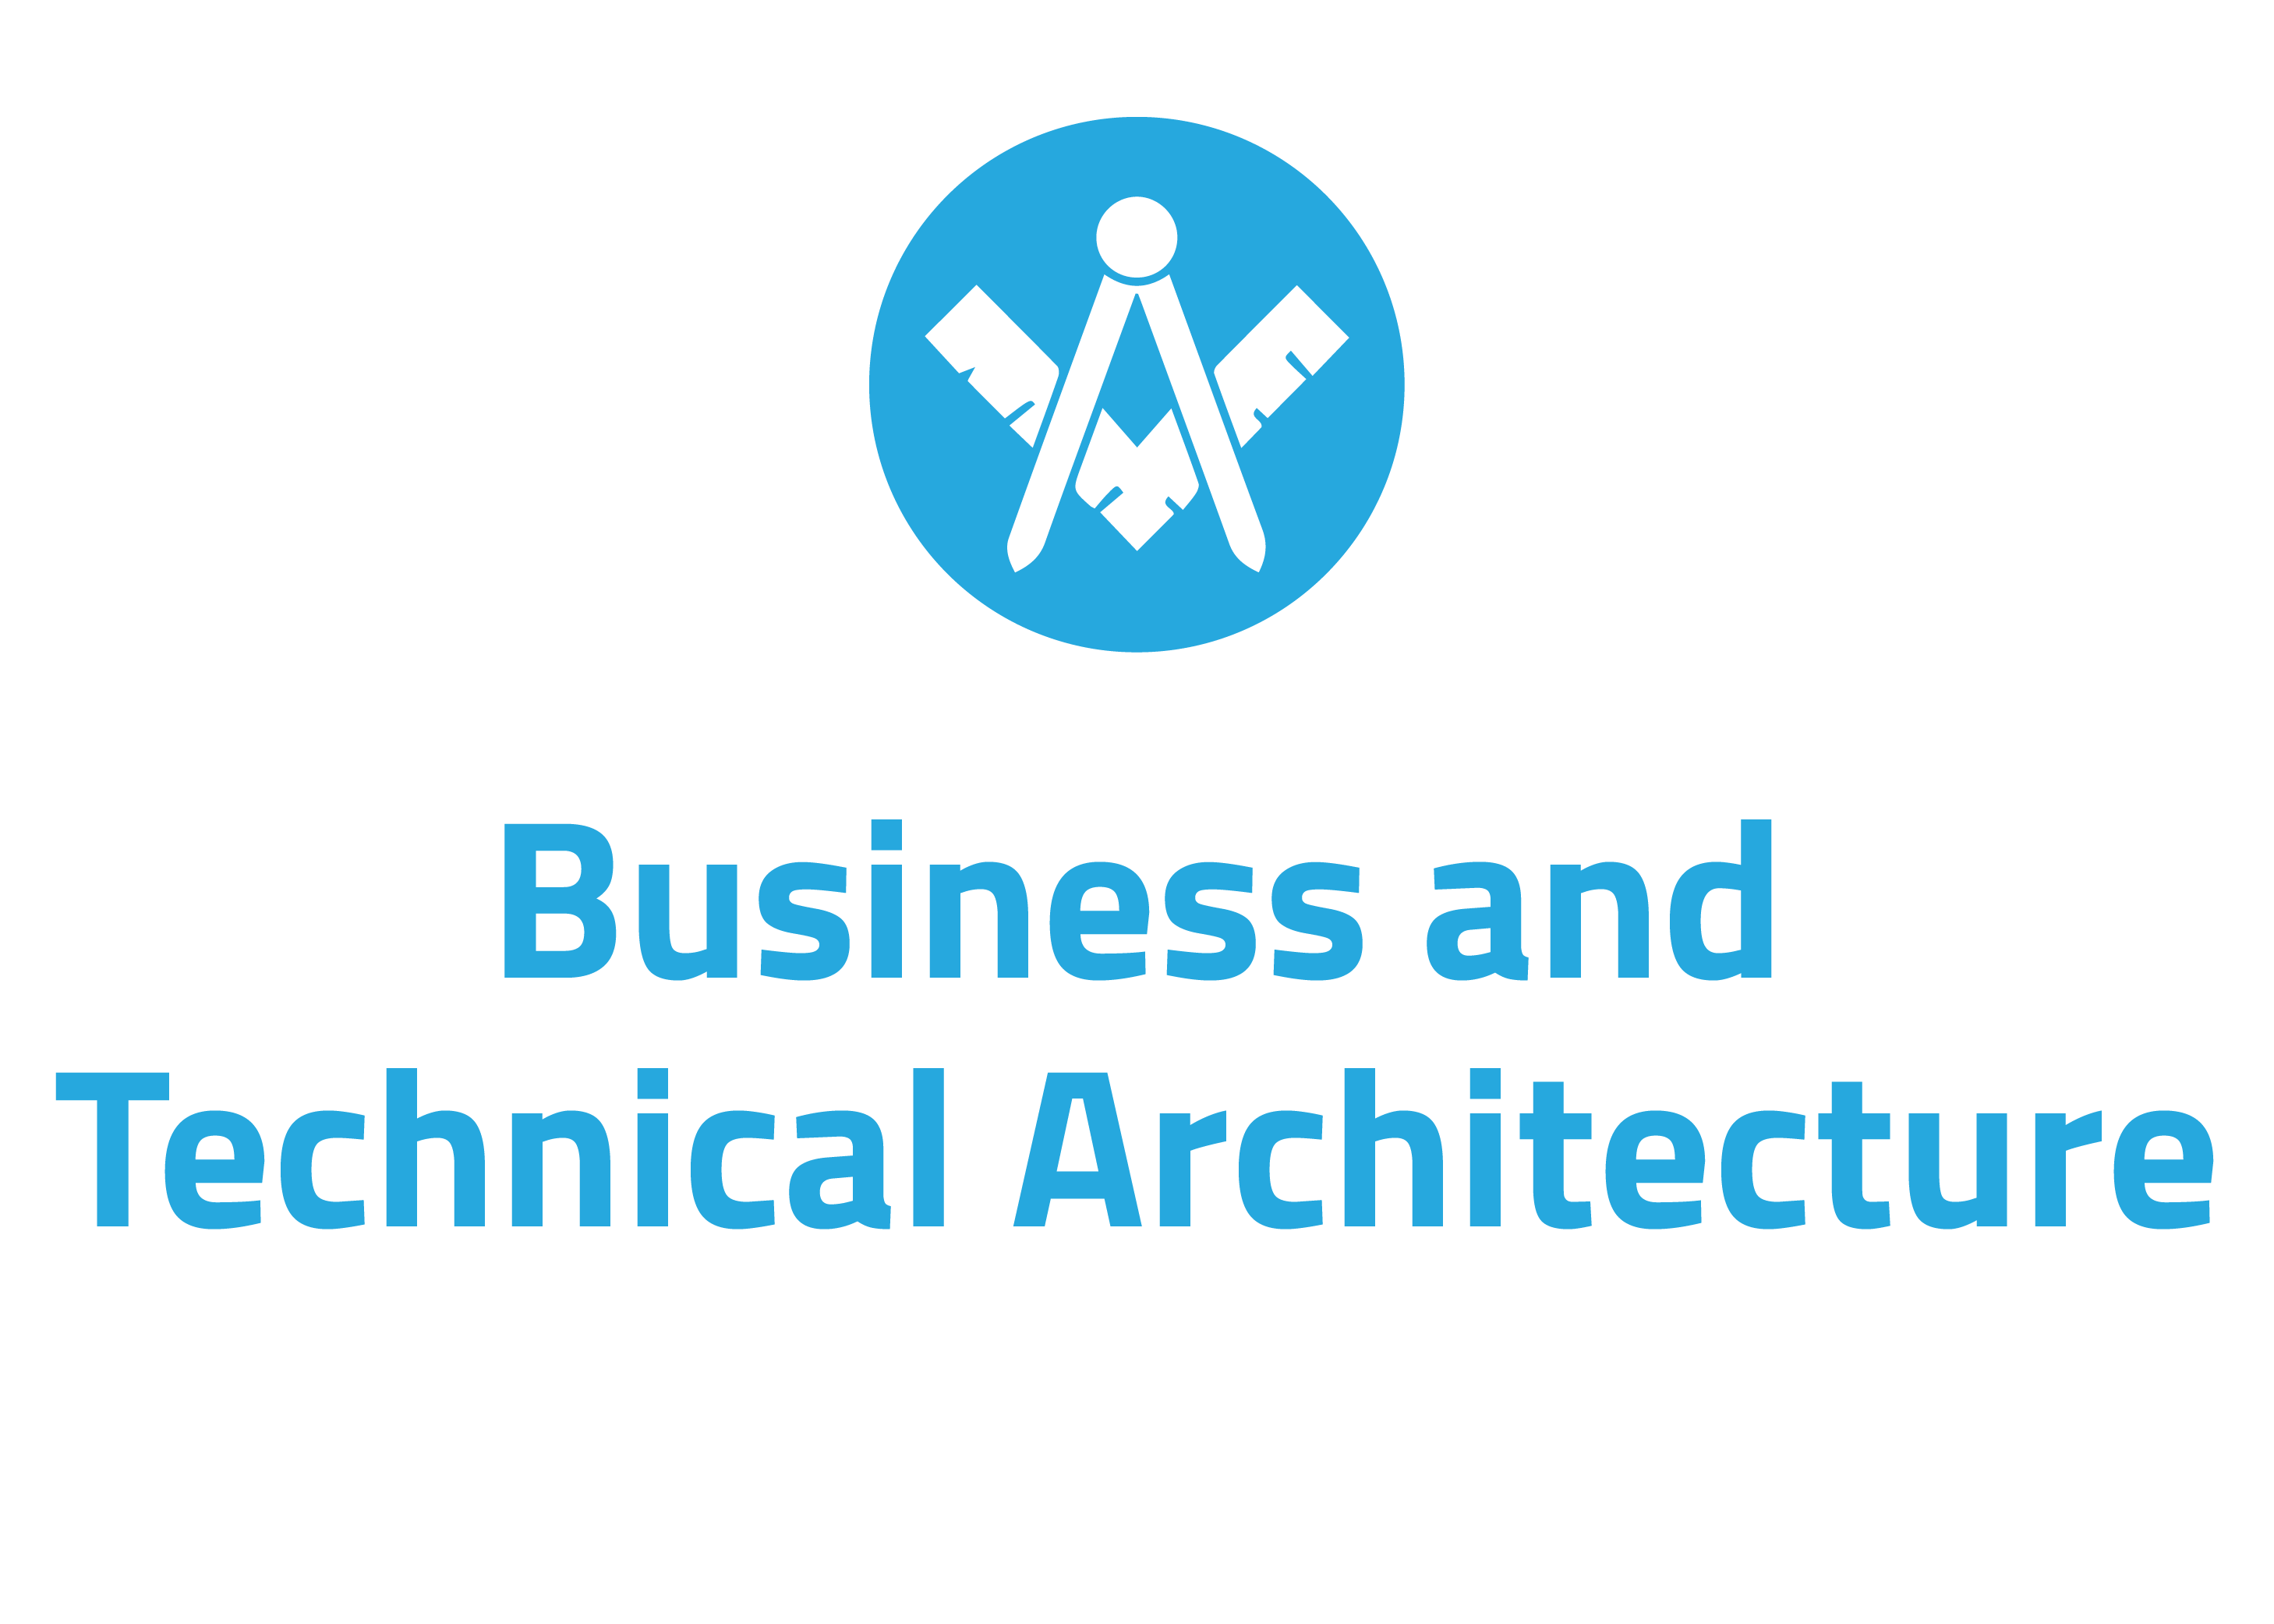 Business and technical architecture for the insurance industry and financial services Ireland